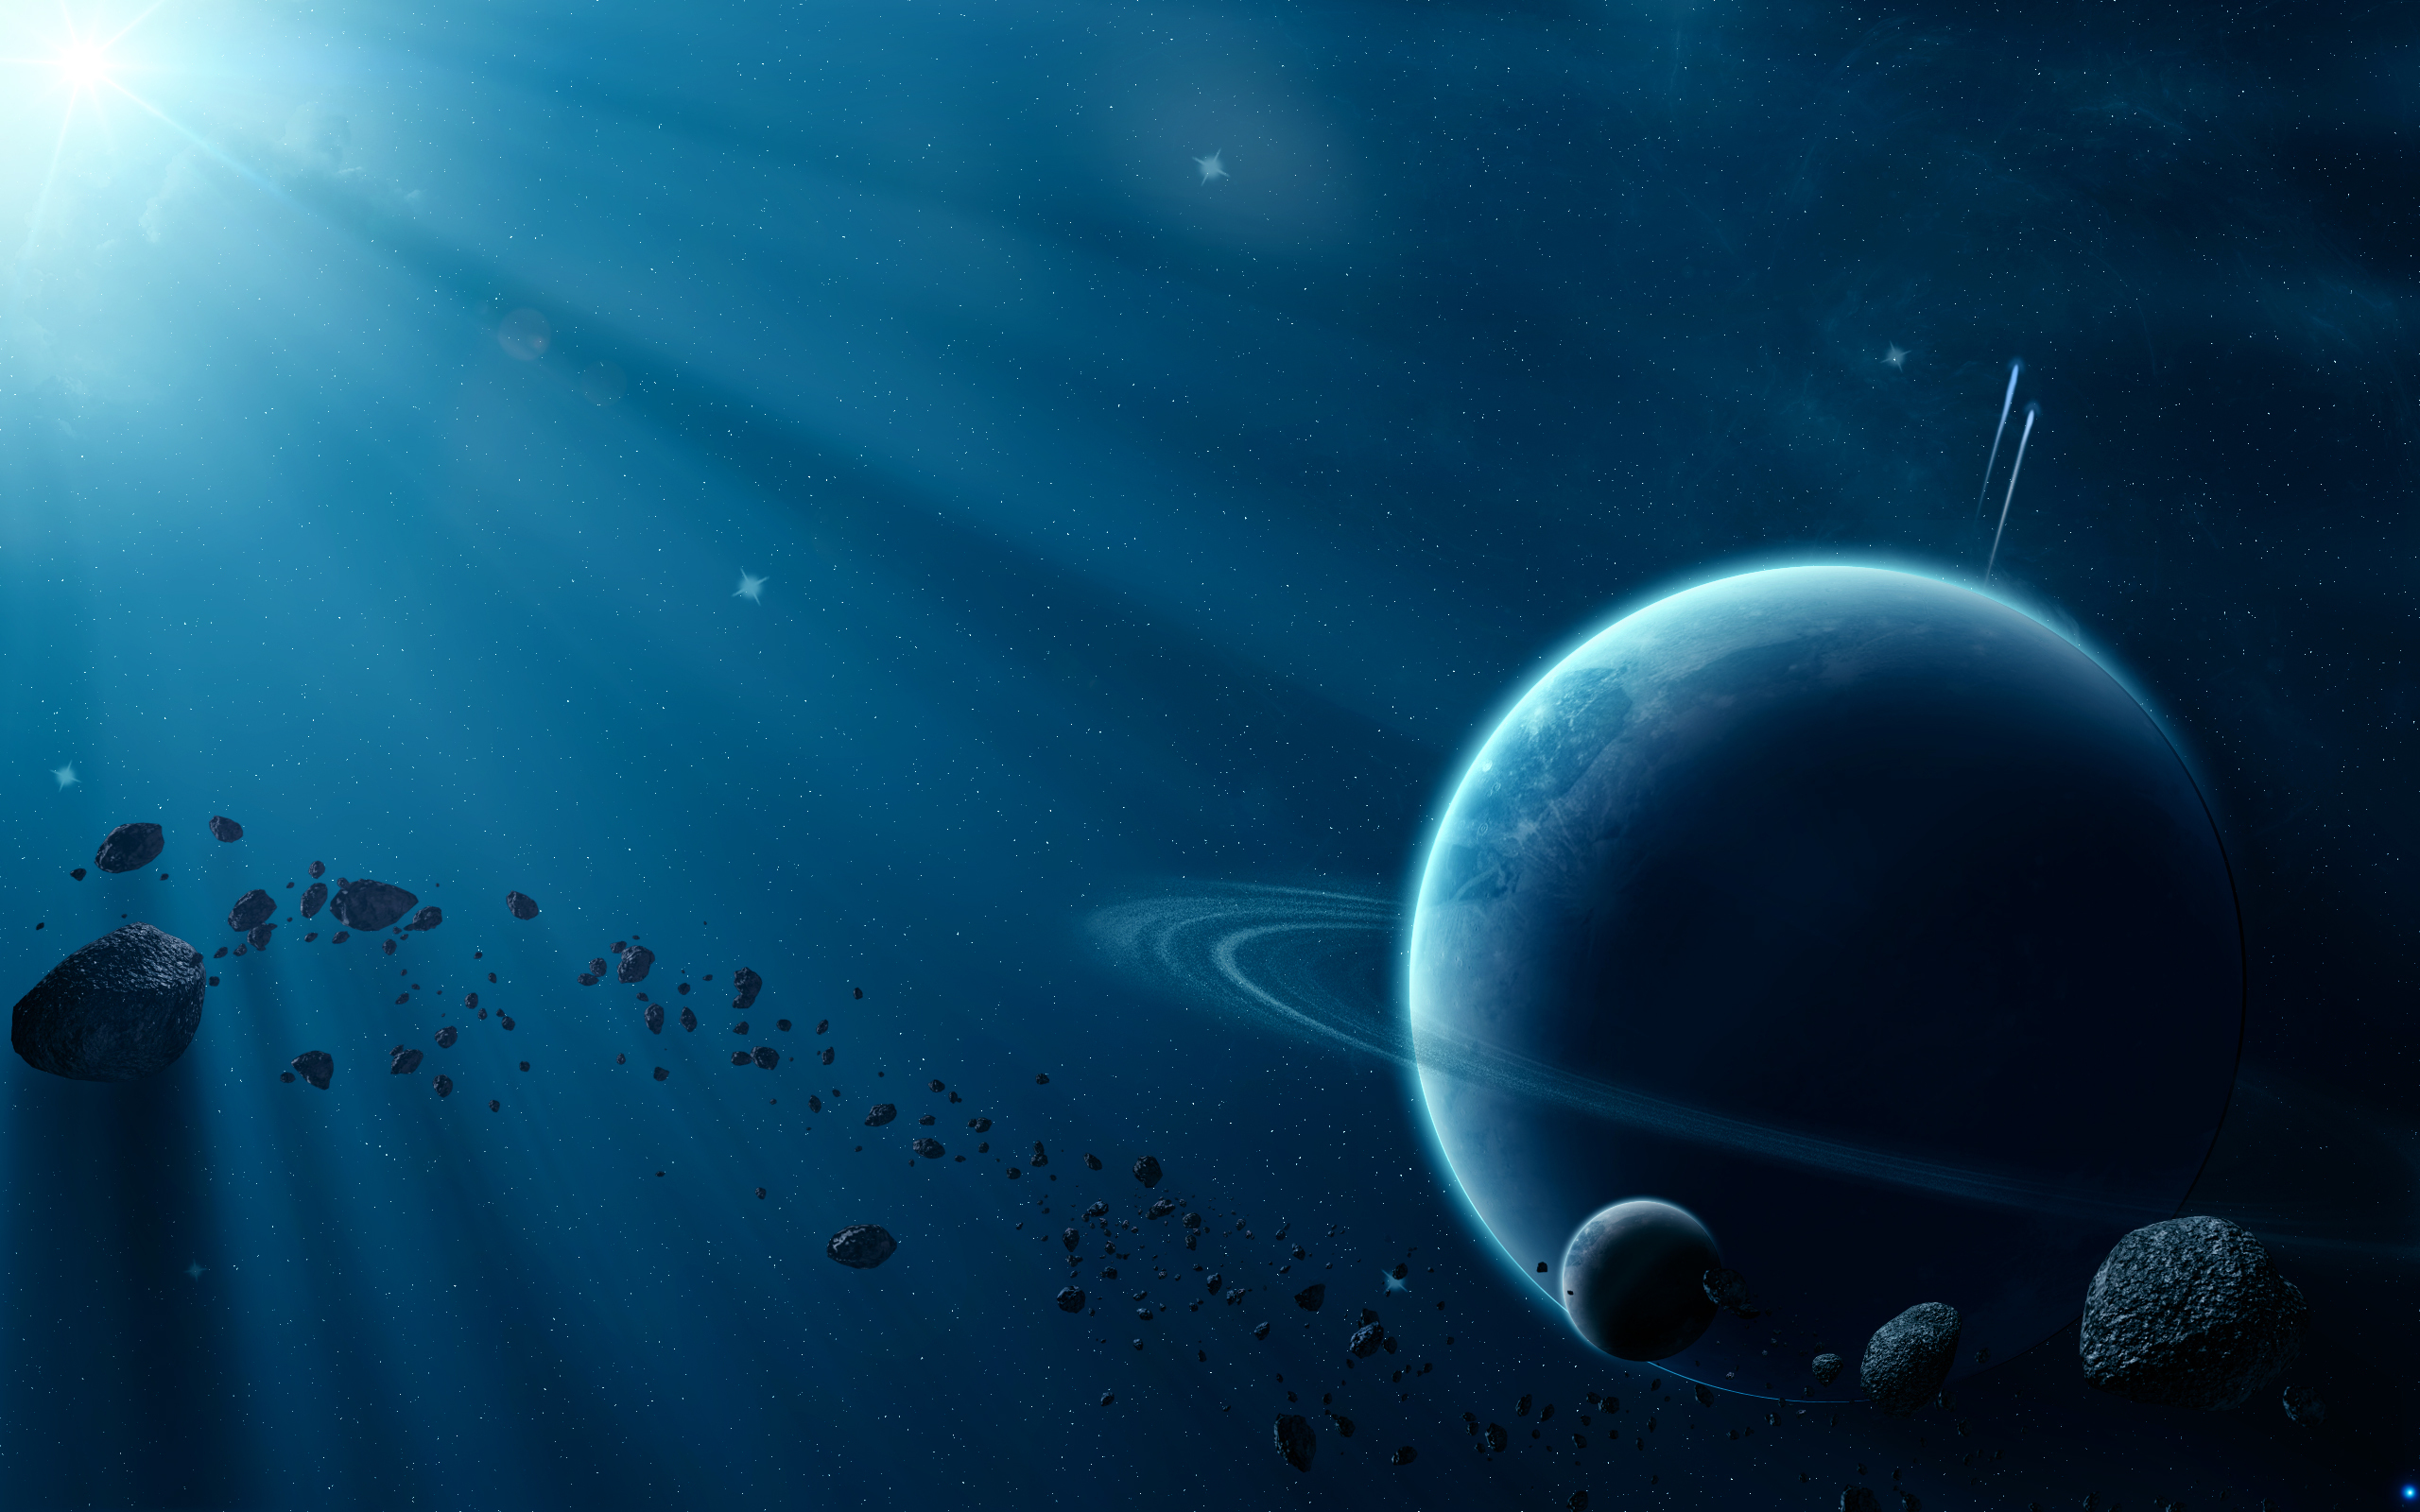 Beautiful Space Pictures Wallpaper